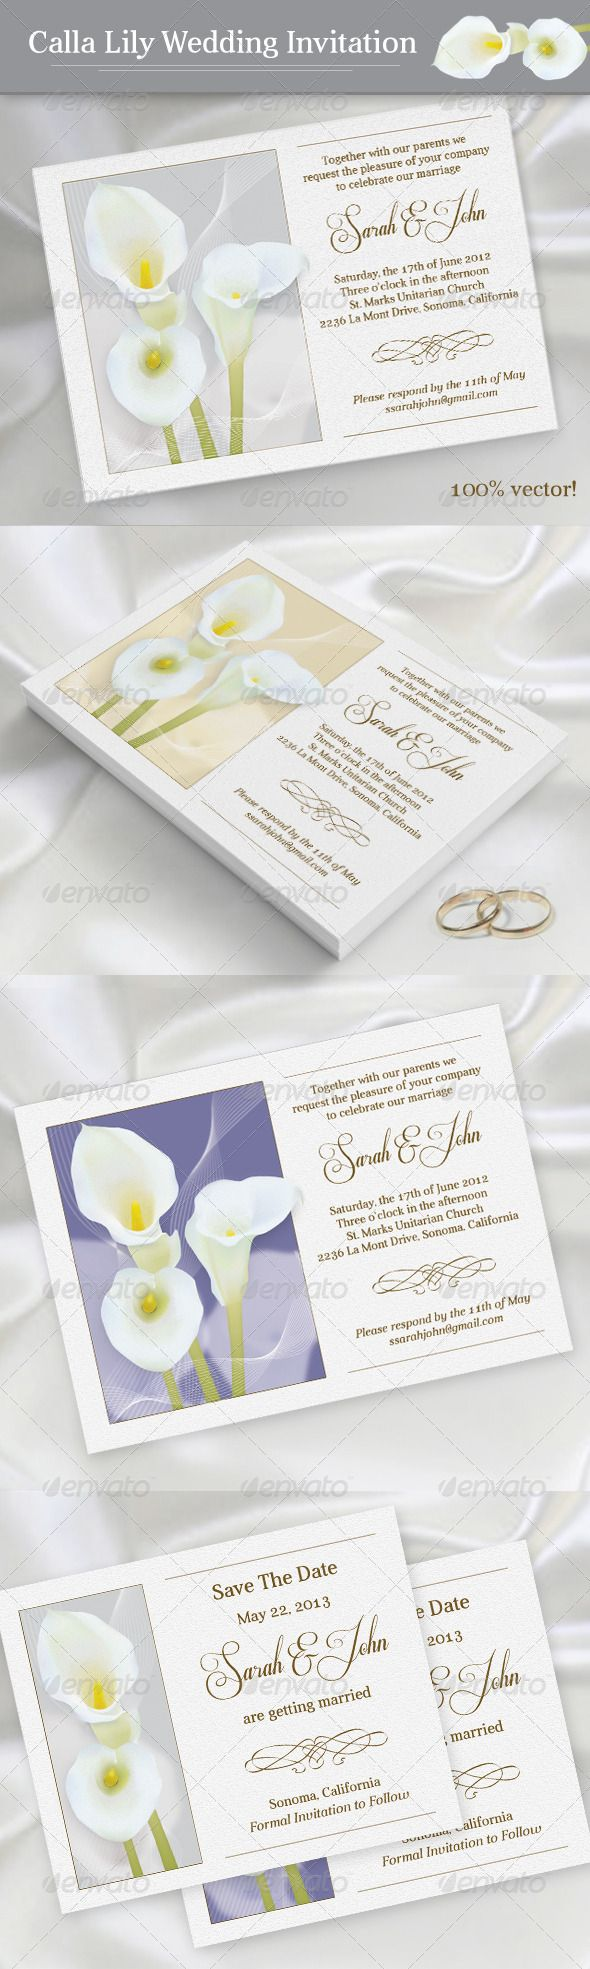 wedding invitation template themeforest%0A Calla Lily Wedding Invitation  GraphicRiver This set includes printable  templates for the following items